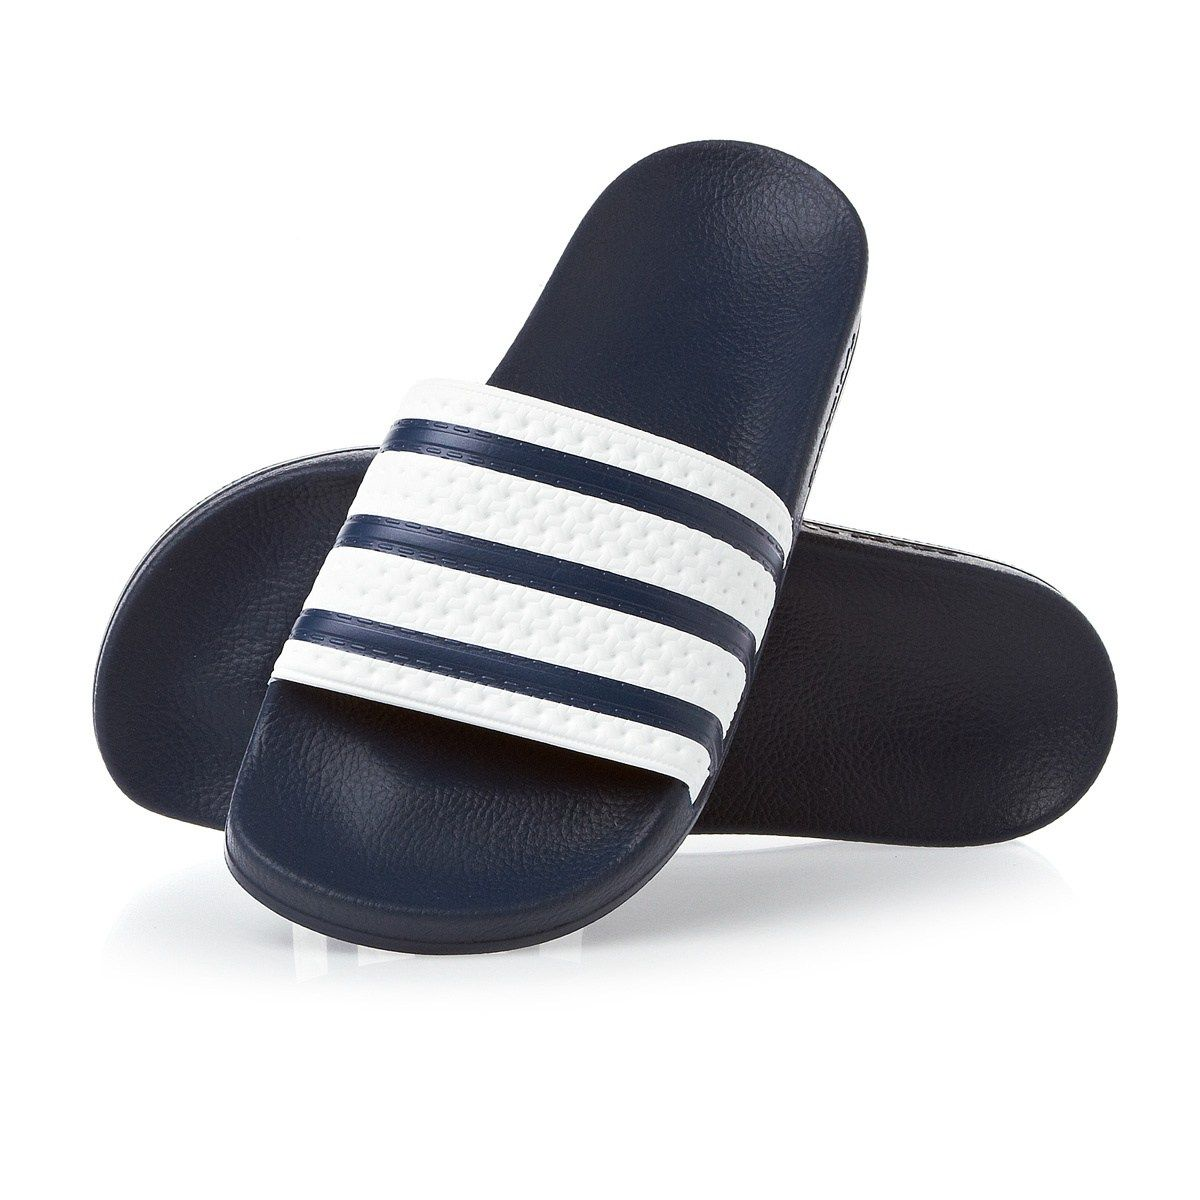 96bd4912293b Men s adidas originals Sandals - adidas originals Adilette Sandals - adidas  Blue